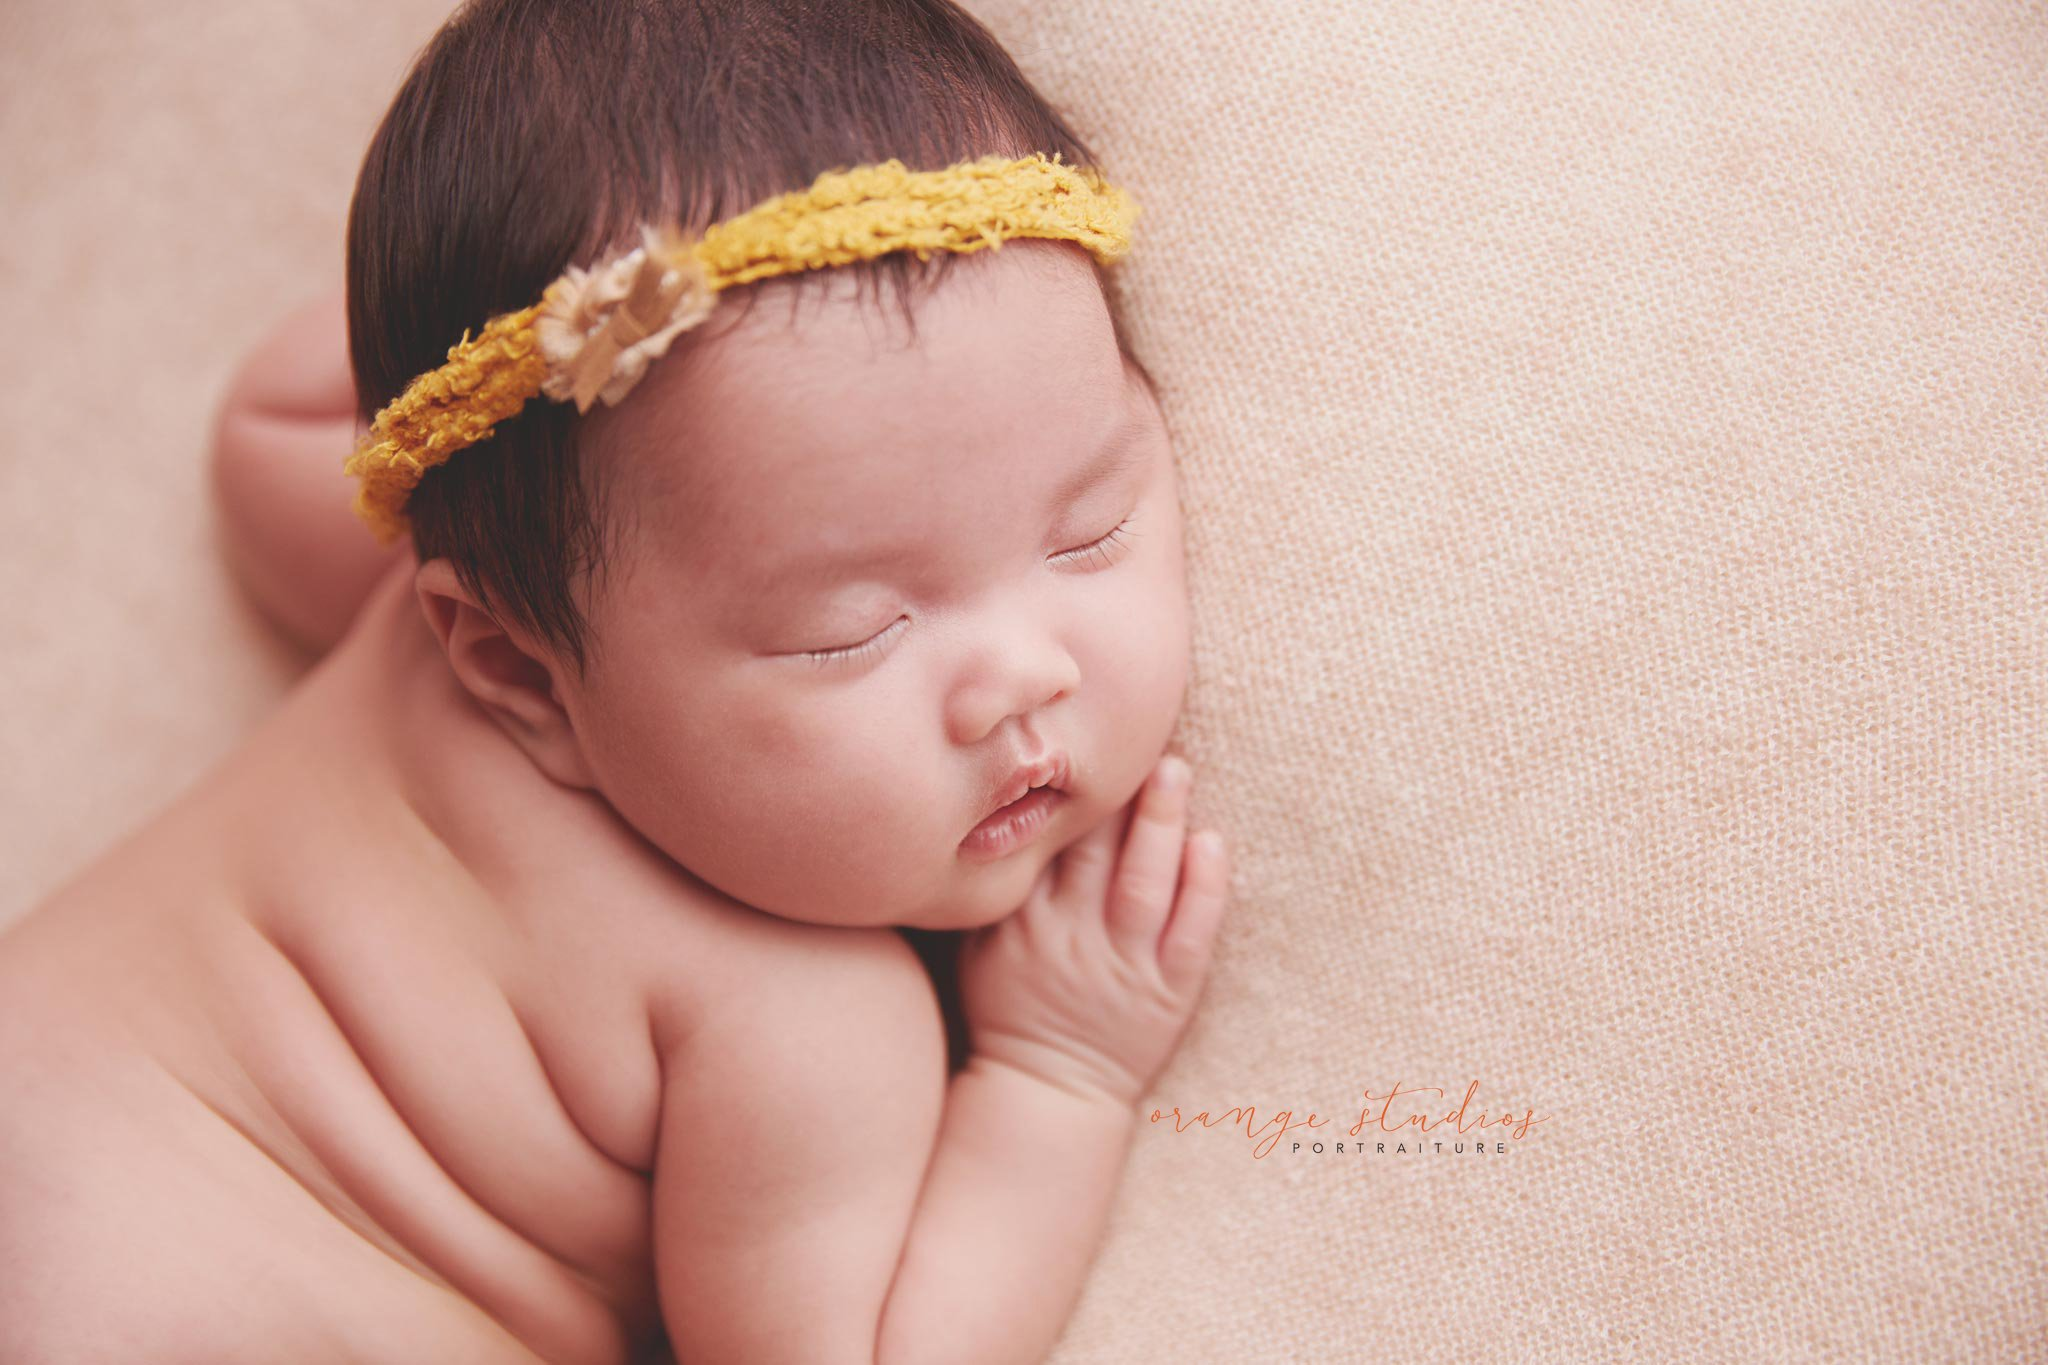 Chubby little abigail at 5 weeks old newborn photography